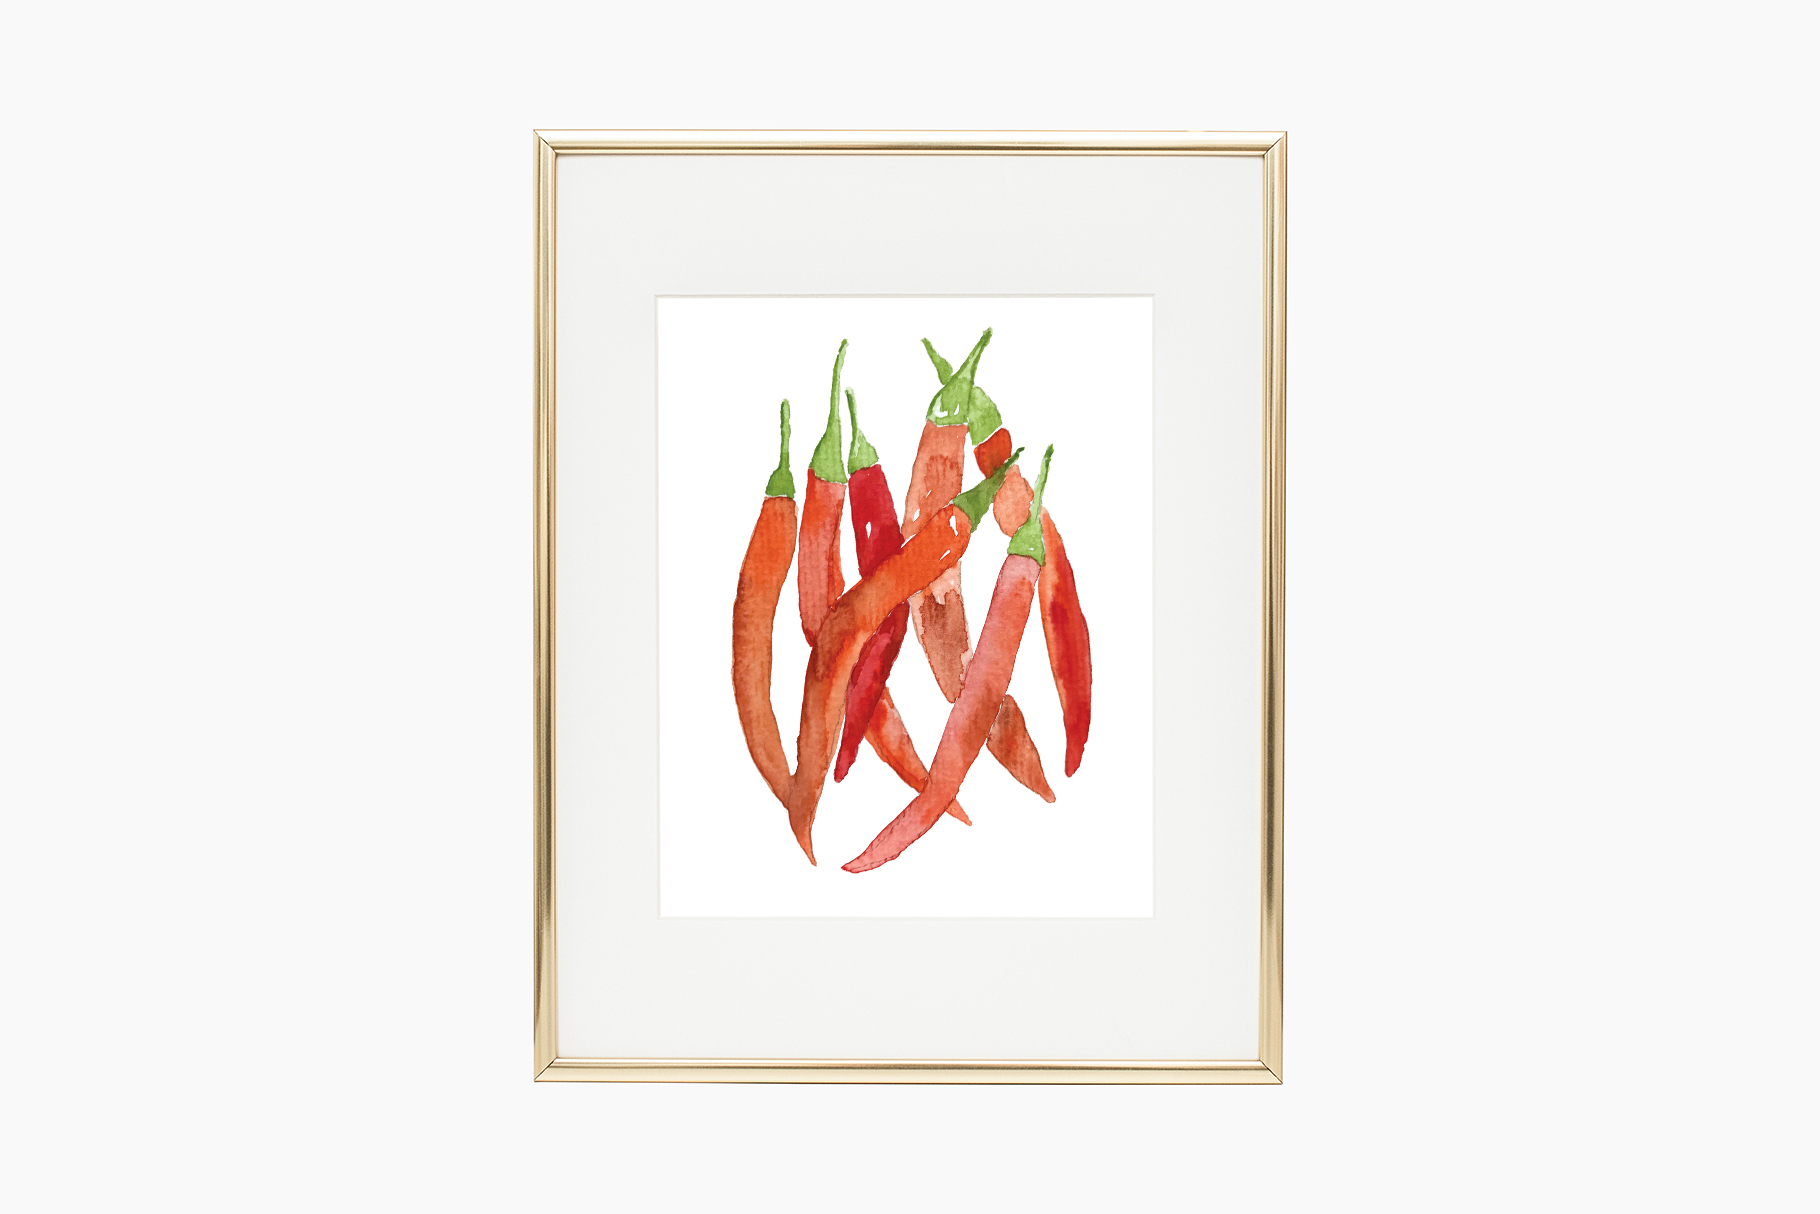 Red hot chili peppers watercolor illustration example image 2